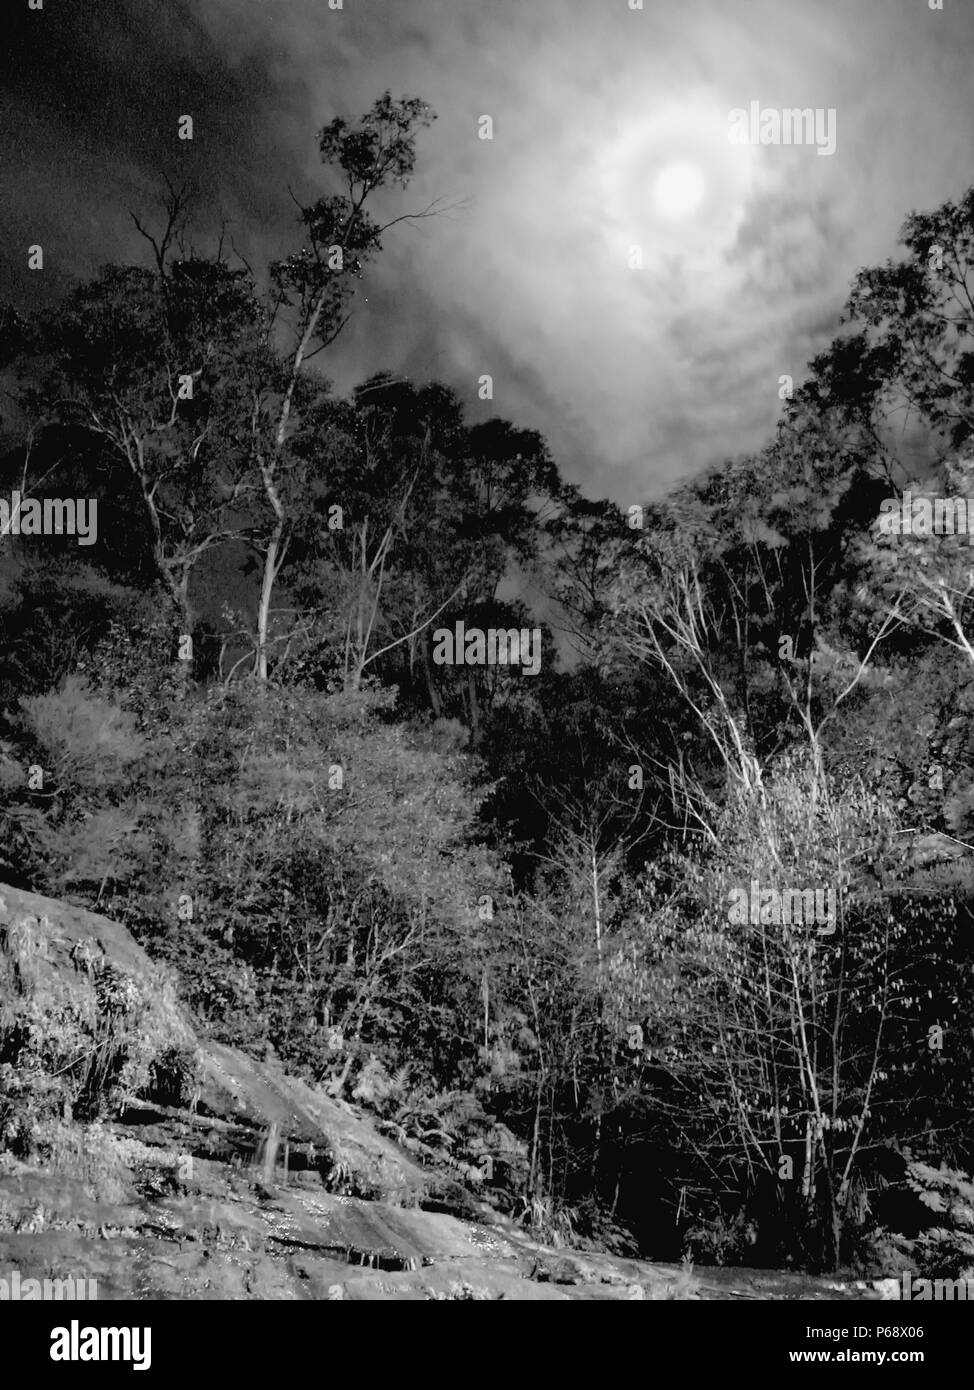 Katoomba Cascade at full moon, Blue Mountains, NSW, Australia.  Ghostly vision of the moon shrouded in thin cloud over a forest scene.  Black and white version. - Stock Image